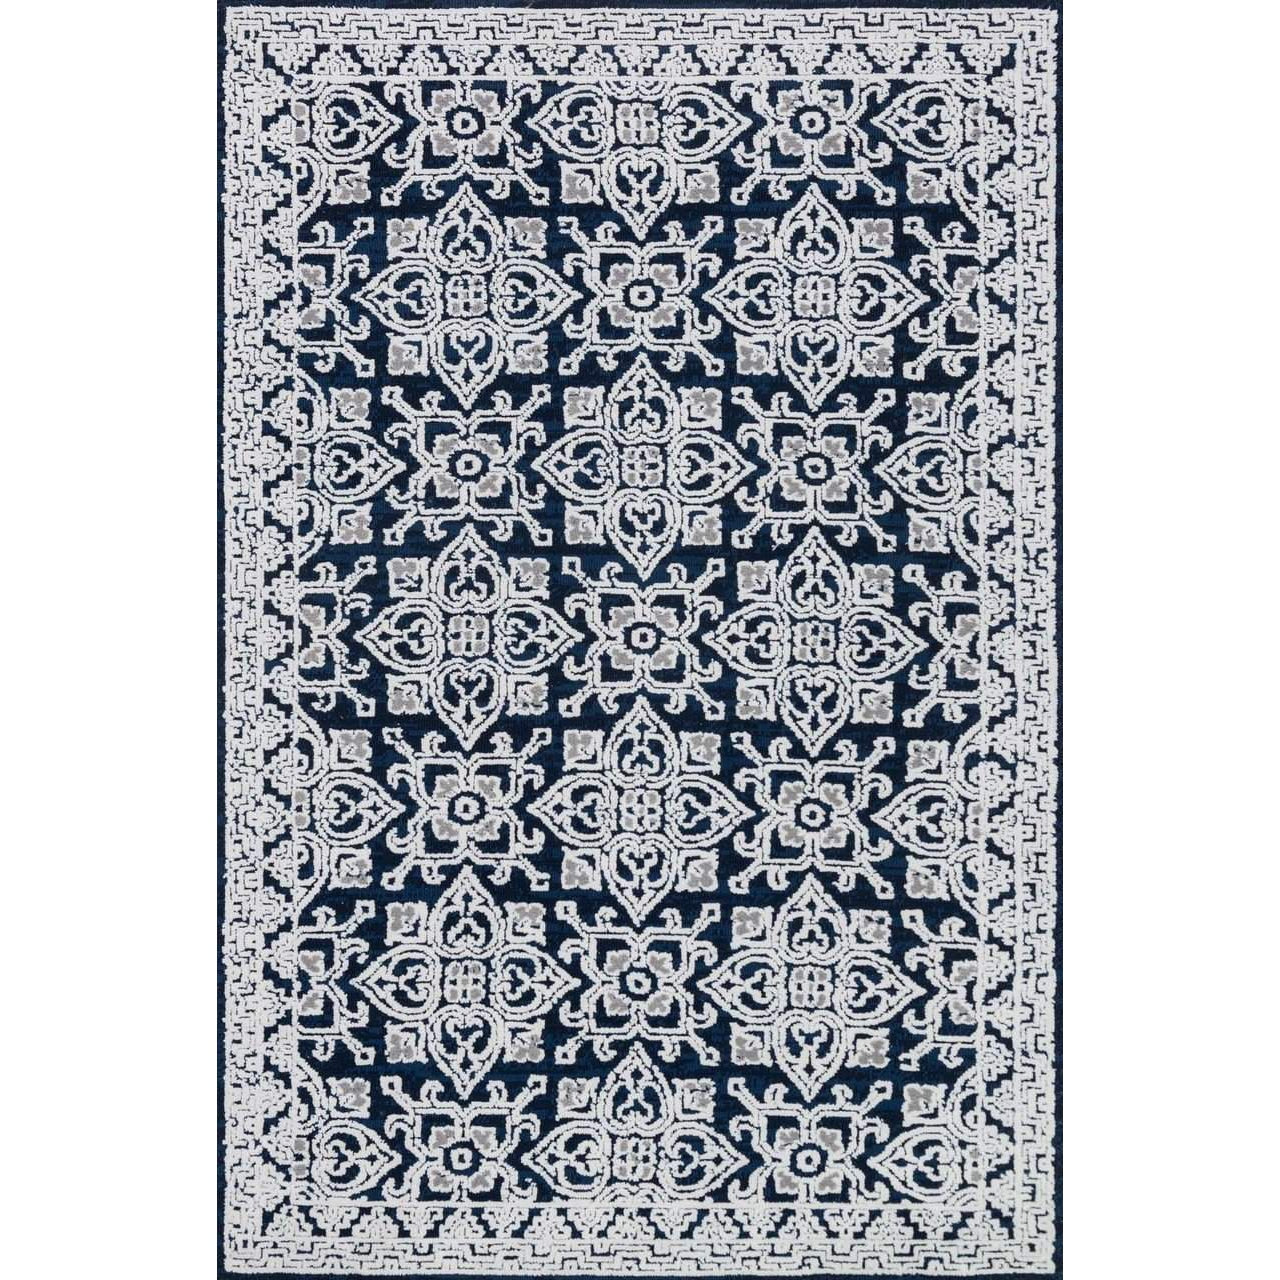 Joanna Gaines Lotus Rug Collection - Midnight / Silver-Loloi Rugs-Blue Hand Home